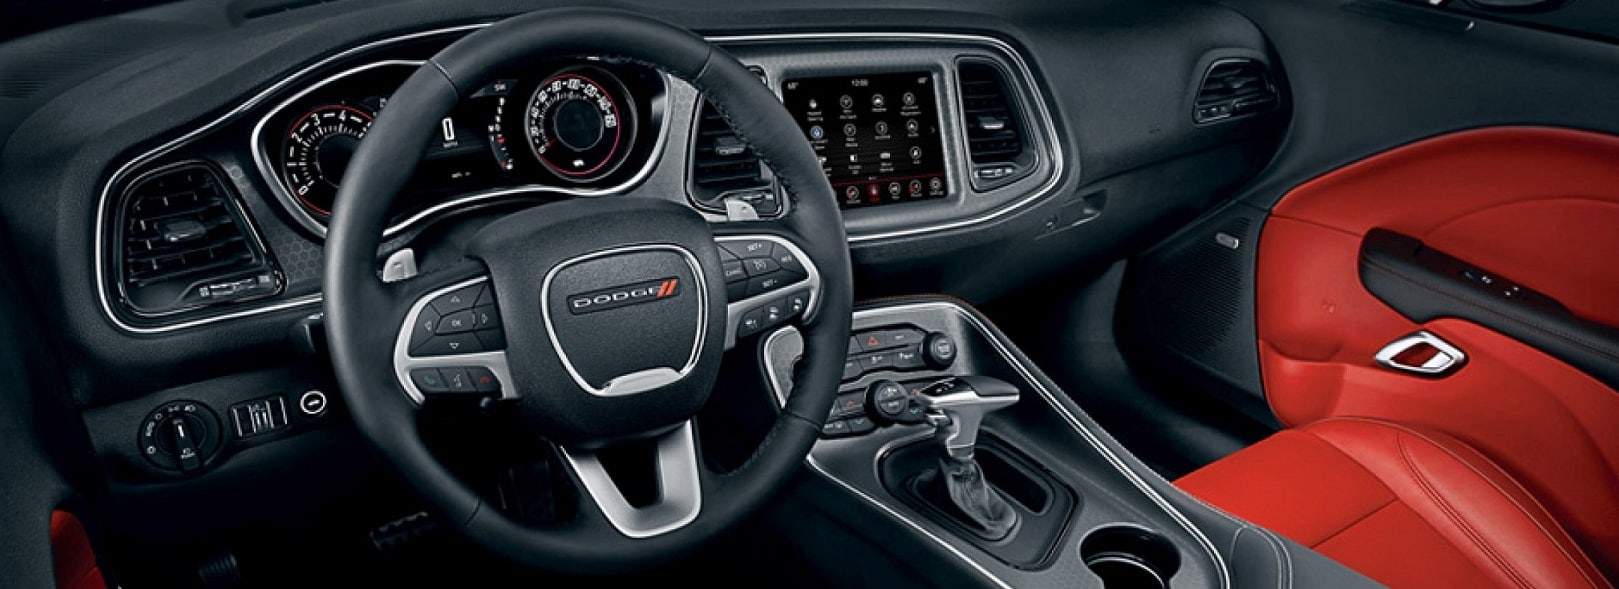 New 2018 Dodge Challenger Coupes For Sale or Lease in Danbury, CT at